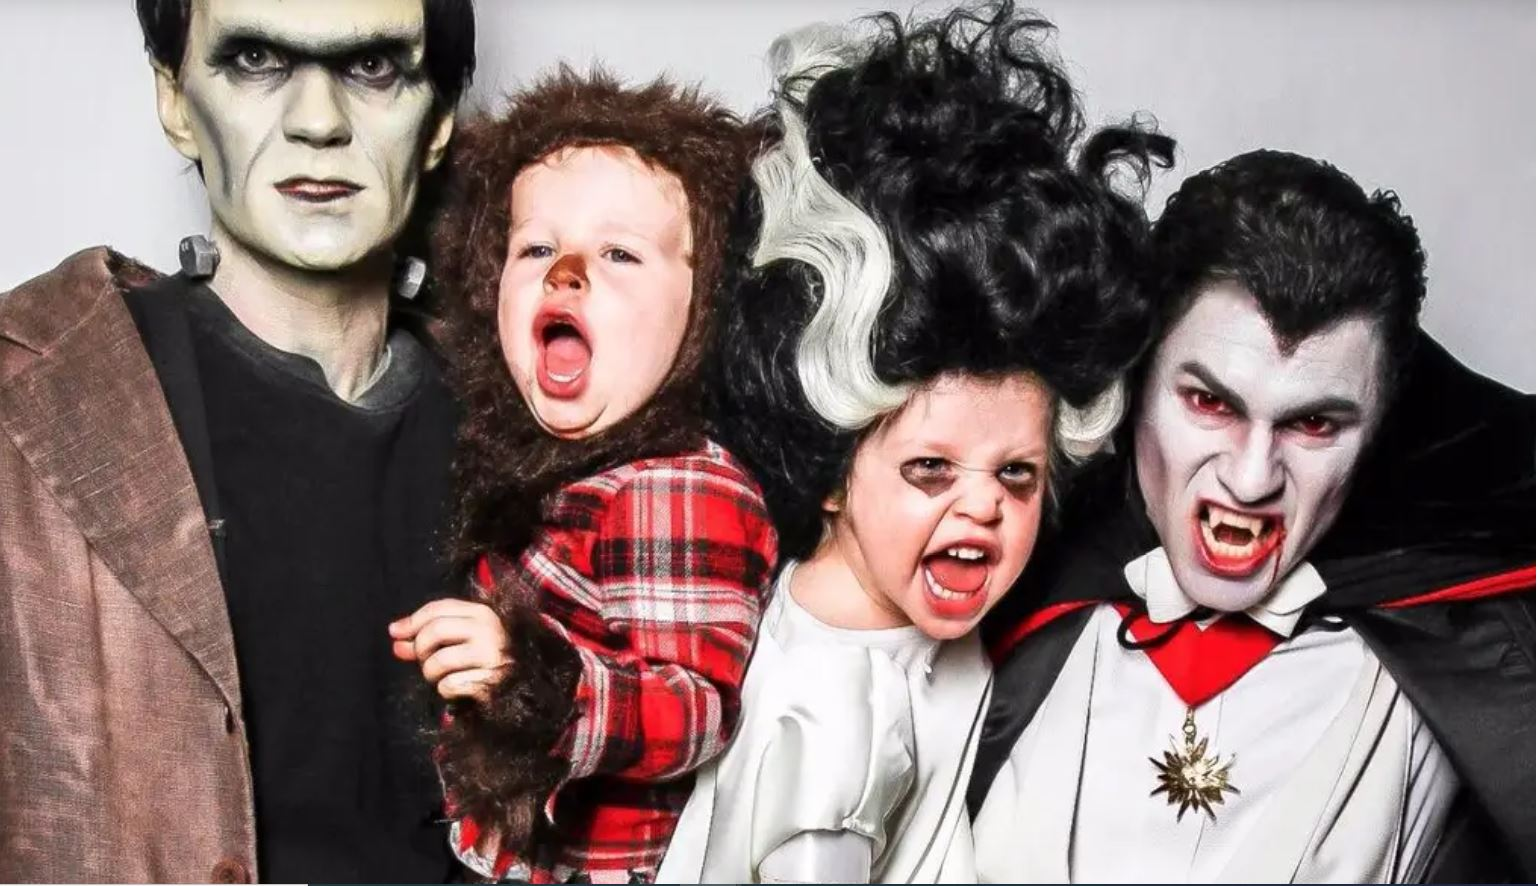 Neil-Patrick-Harris-Frankenstein-celebrity-famous-people-Halloween-costumes